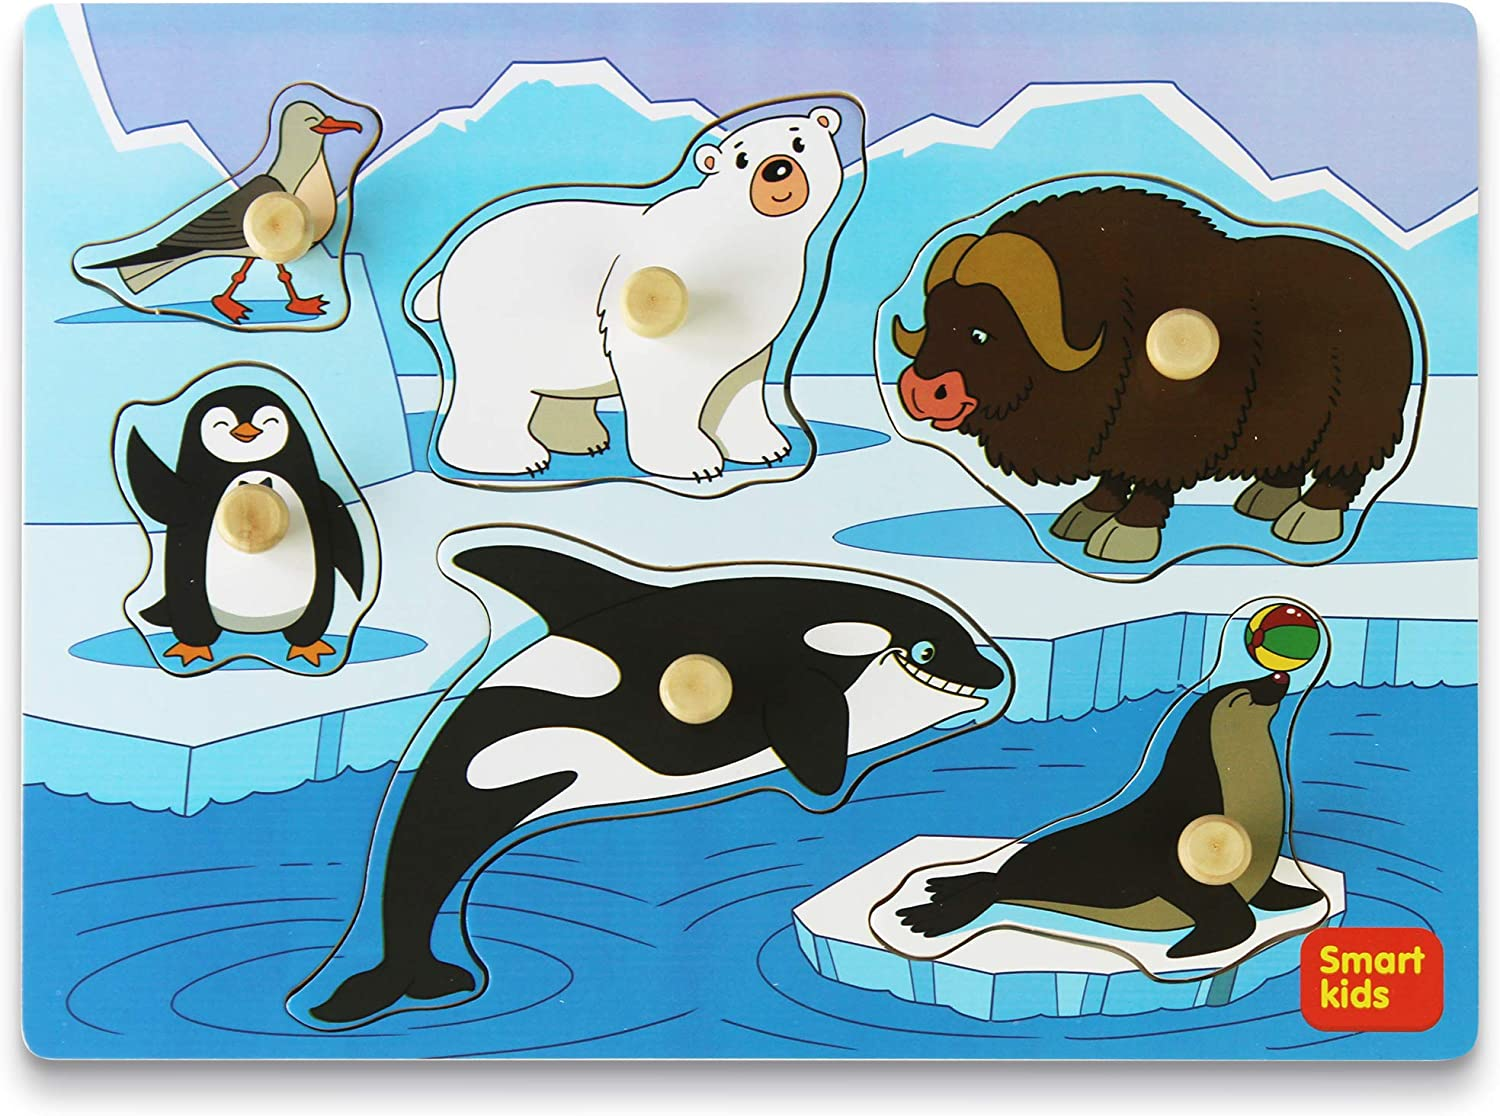 Smart Kids Service Wooden Puzzles for Toddlers Toddler Puzzles Set Arctic Animals Wooden peg Puzzles for Kids Jumbo knob Puzzle Gift Box